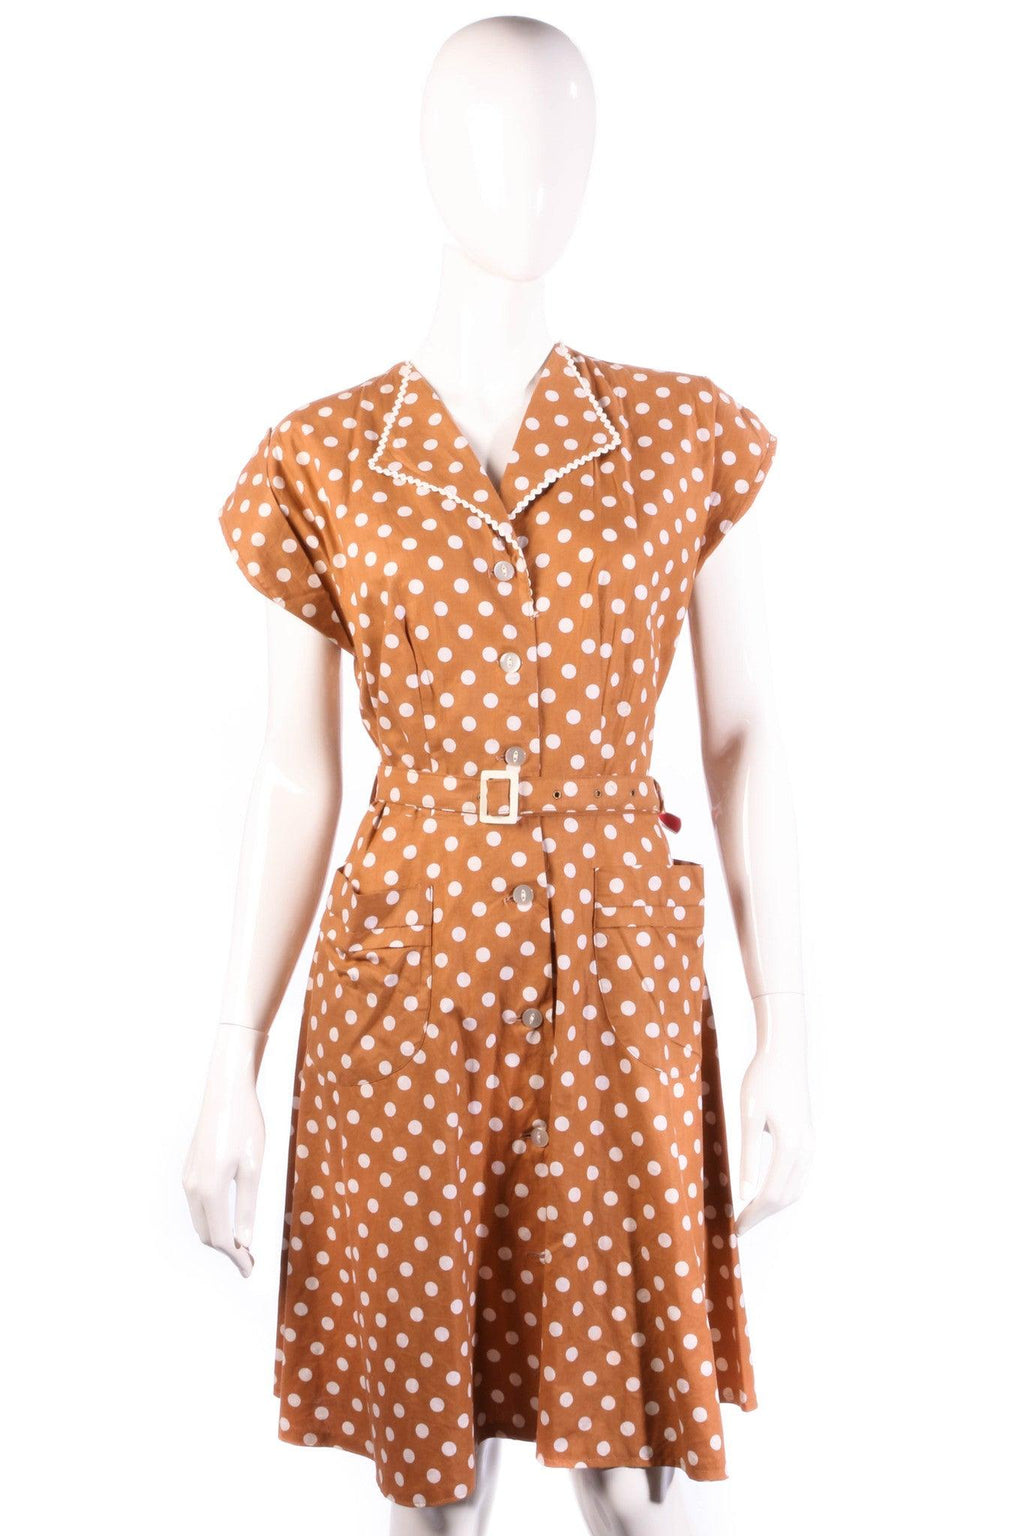 Brown and cream polkadot summer dress